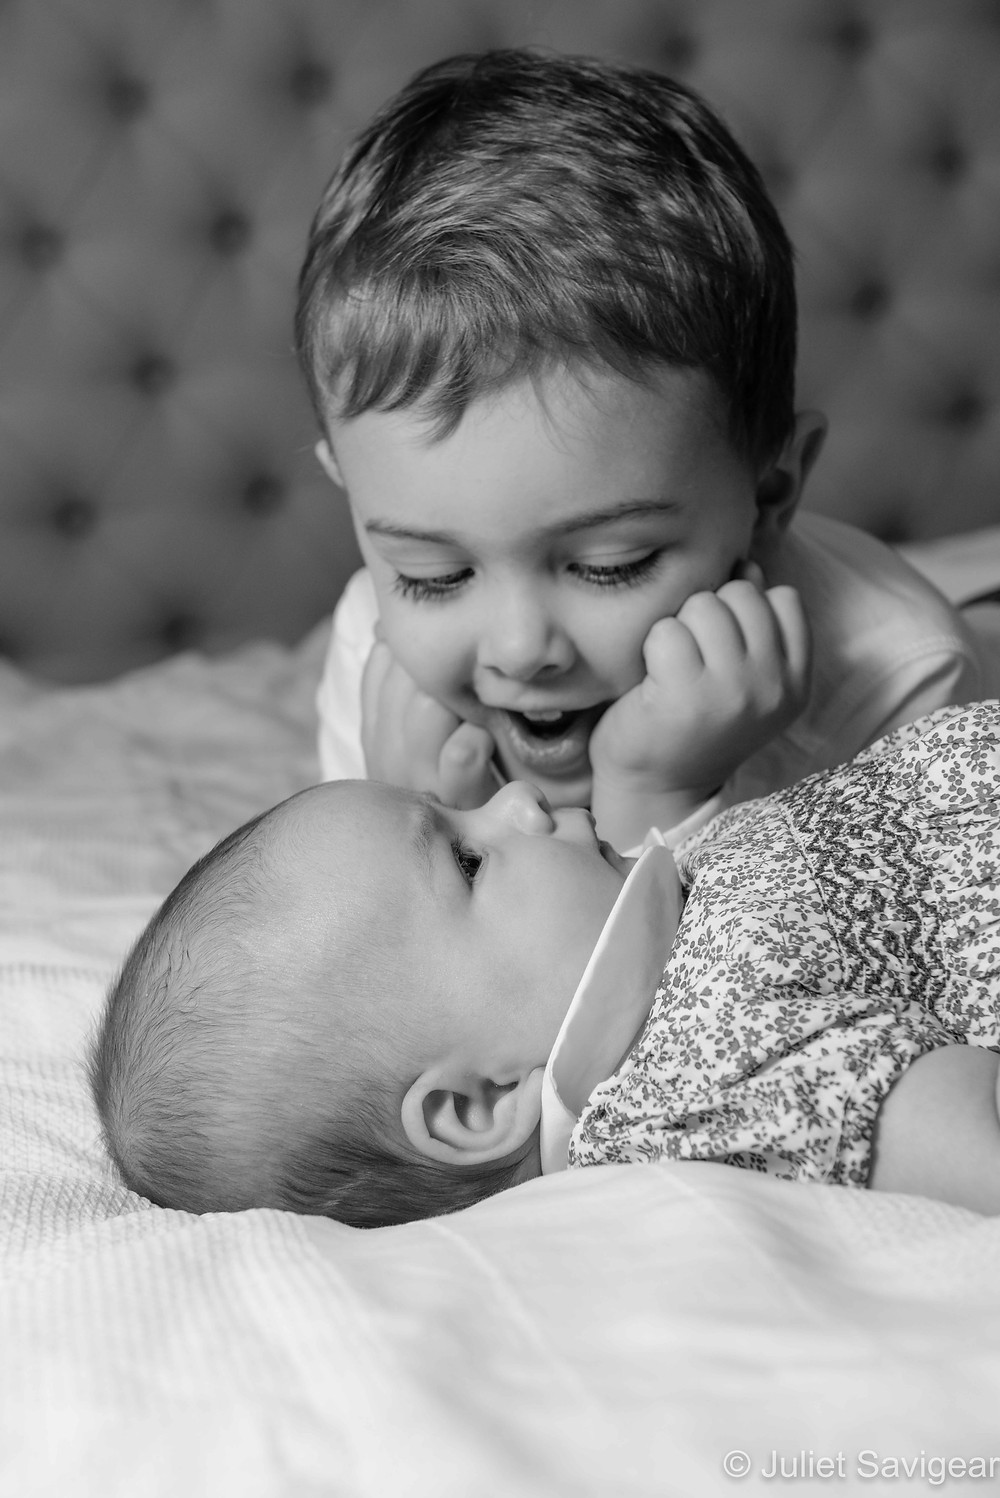 Brother with his baby sister